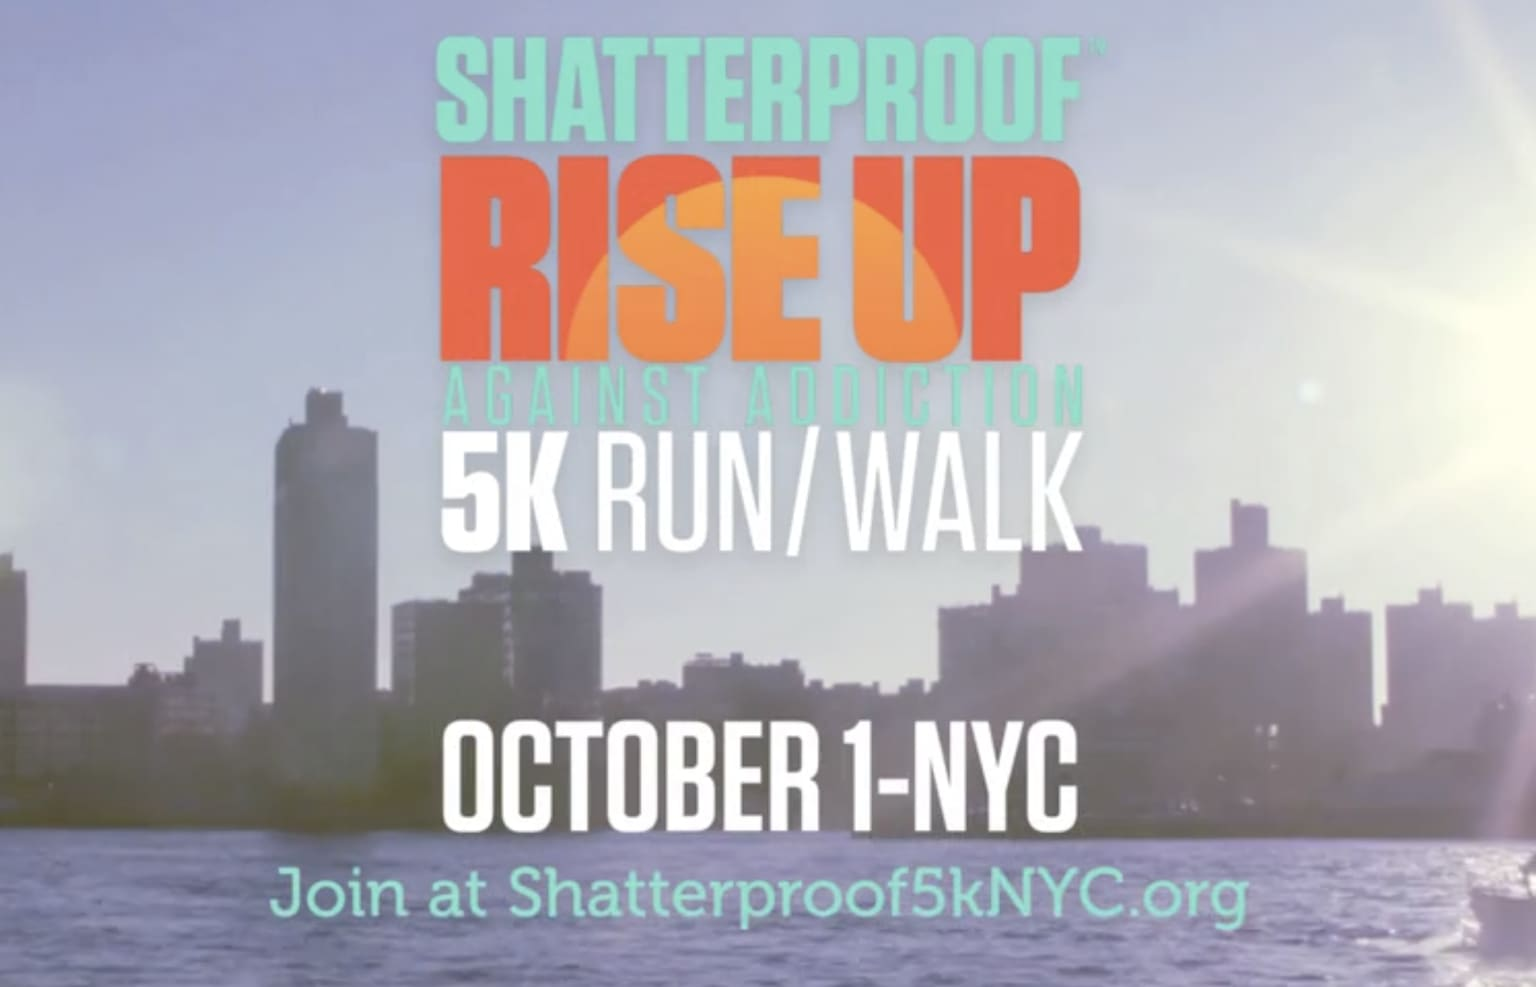 Shatterproof | Rise Up Against Addiction